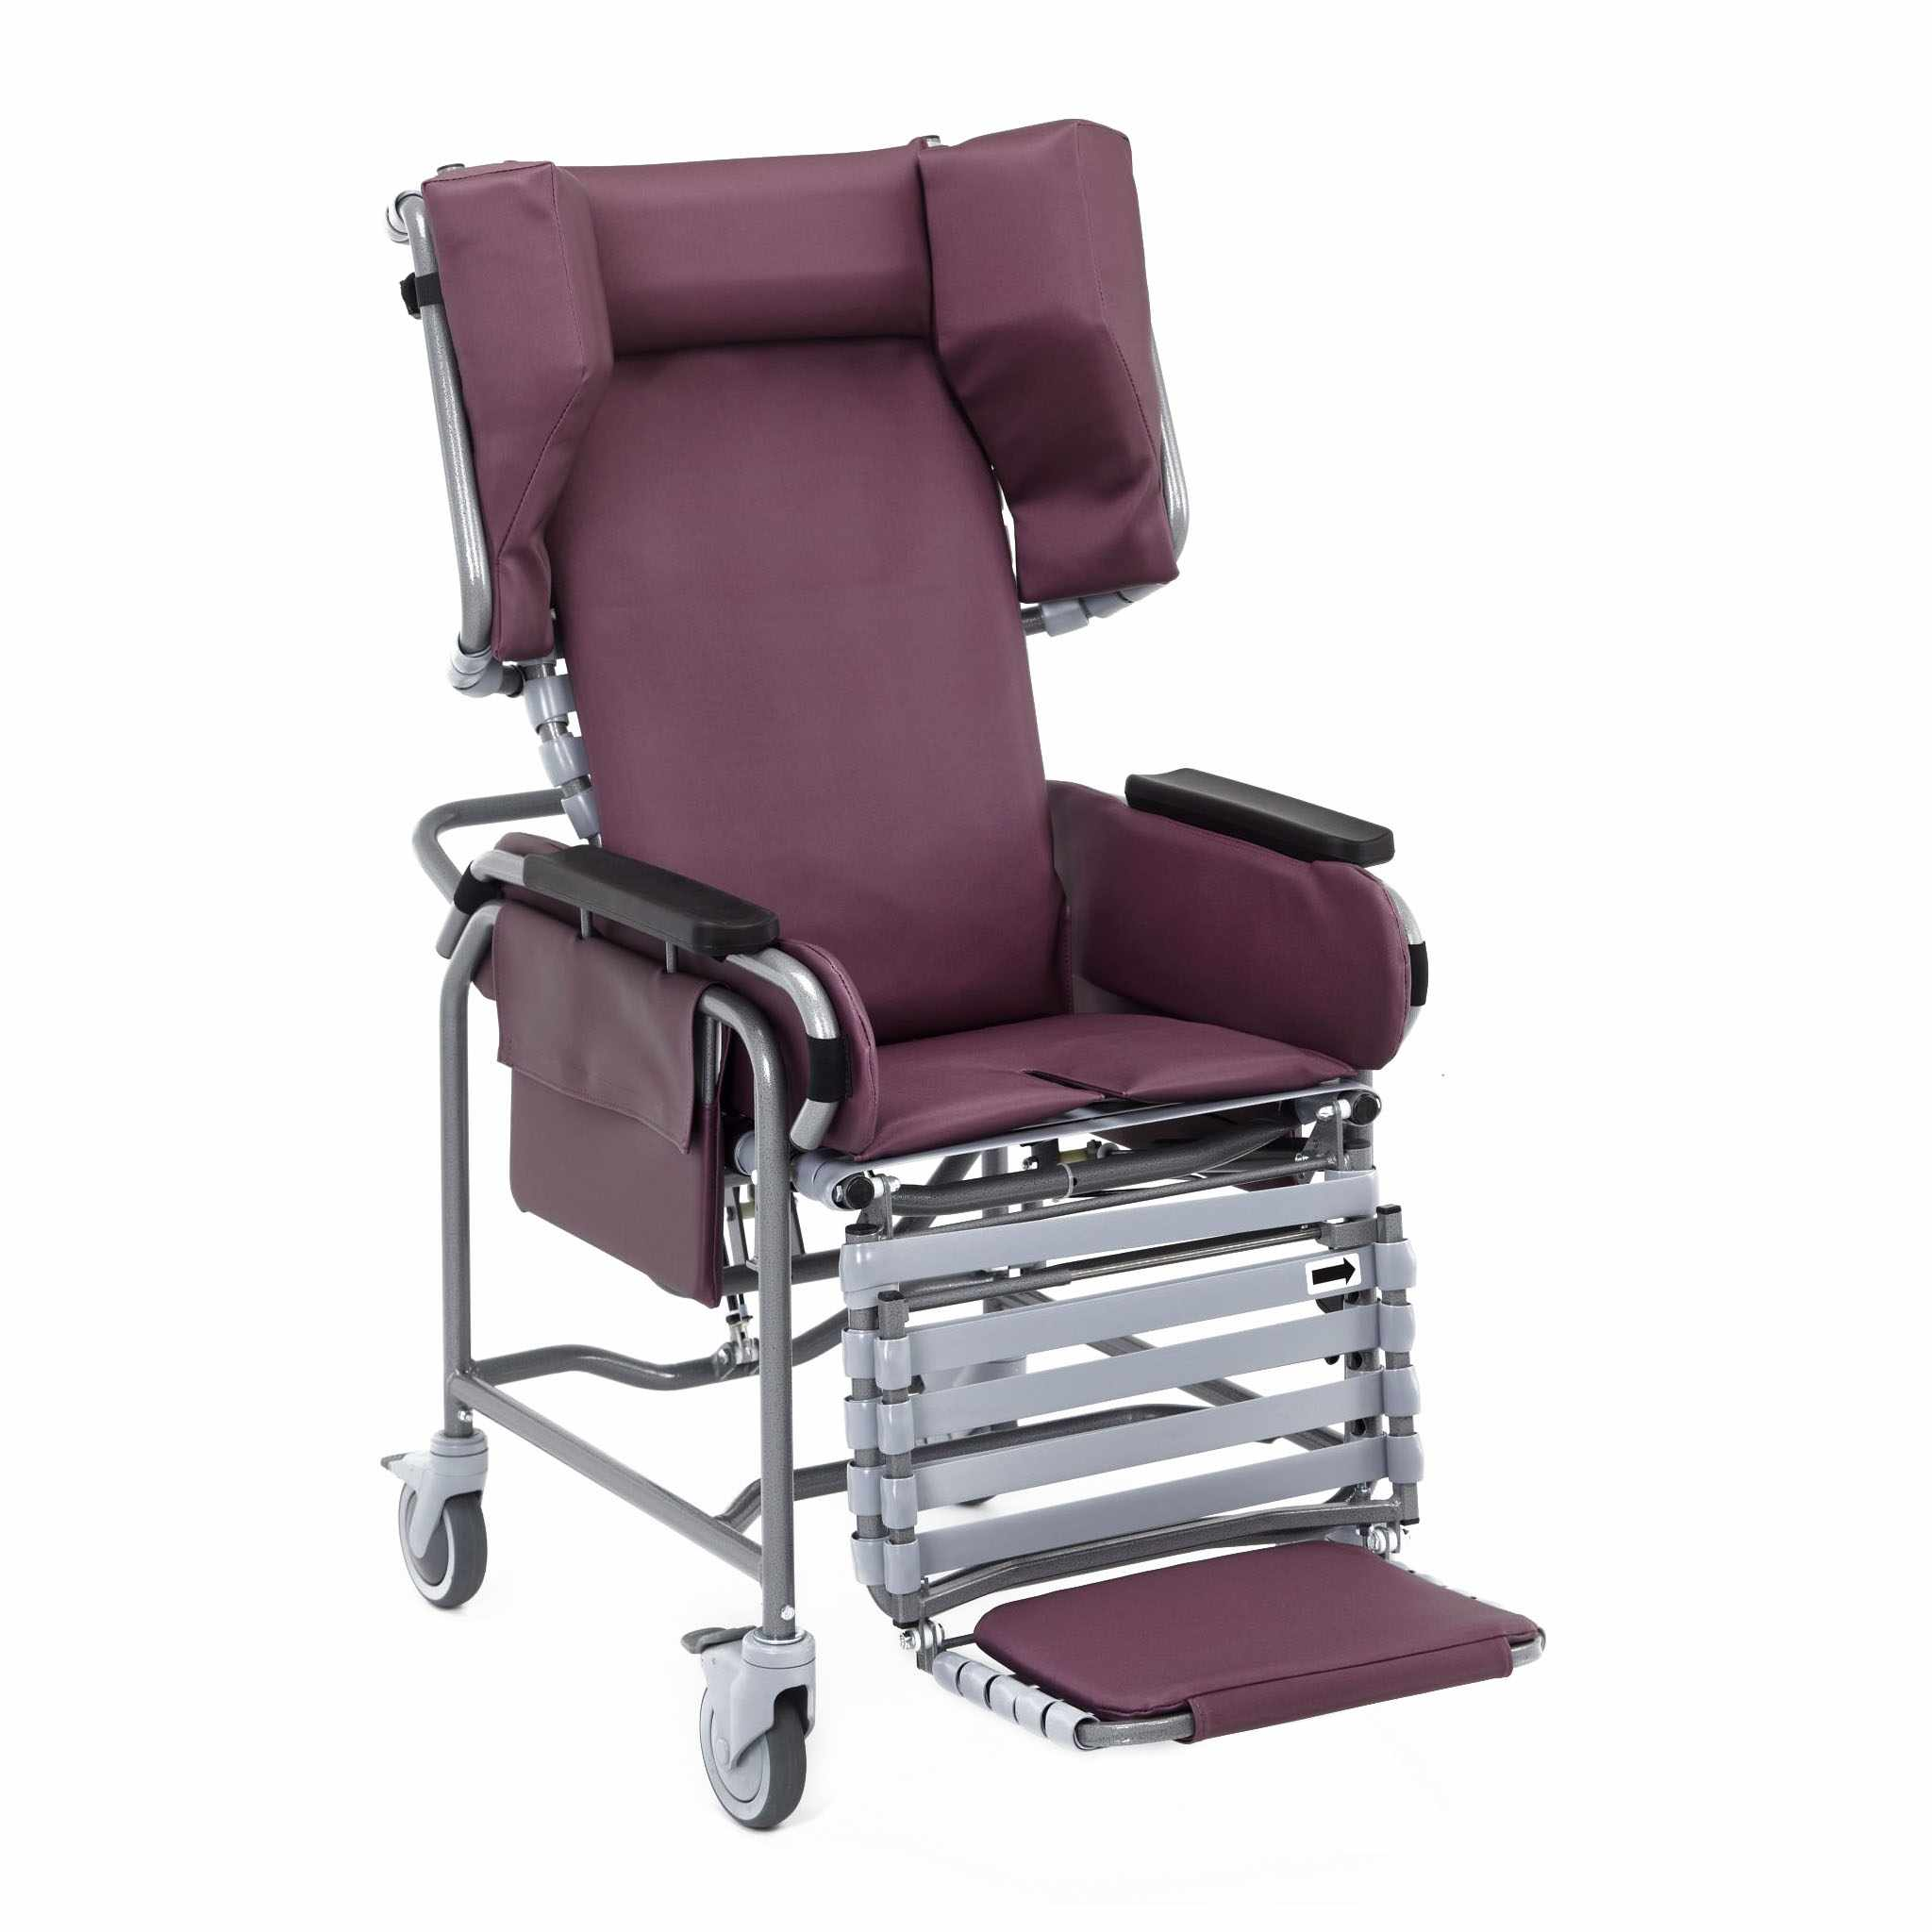 Broda 30VT Centric tilt semi recliner chair